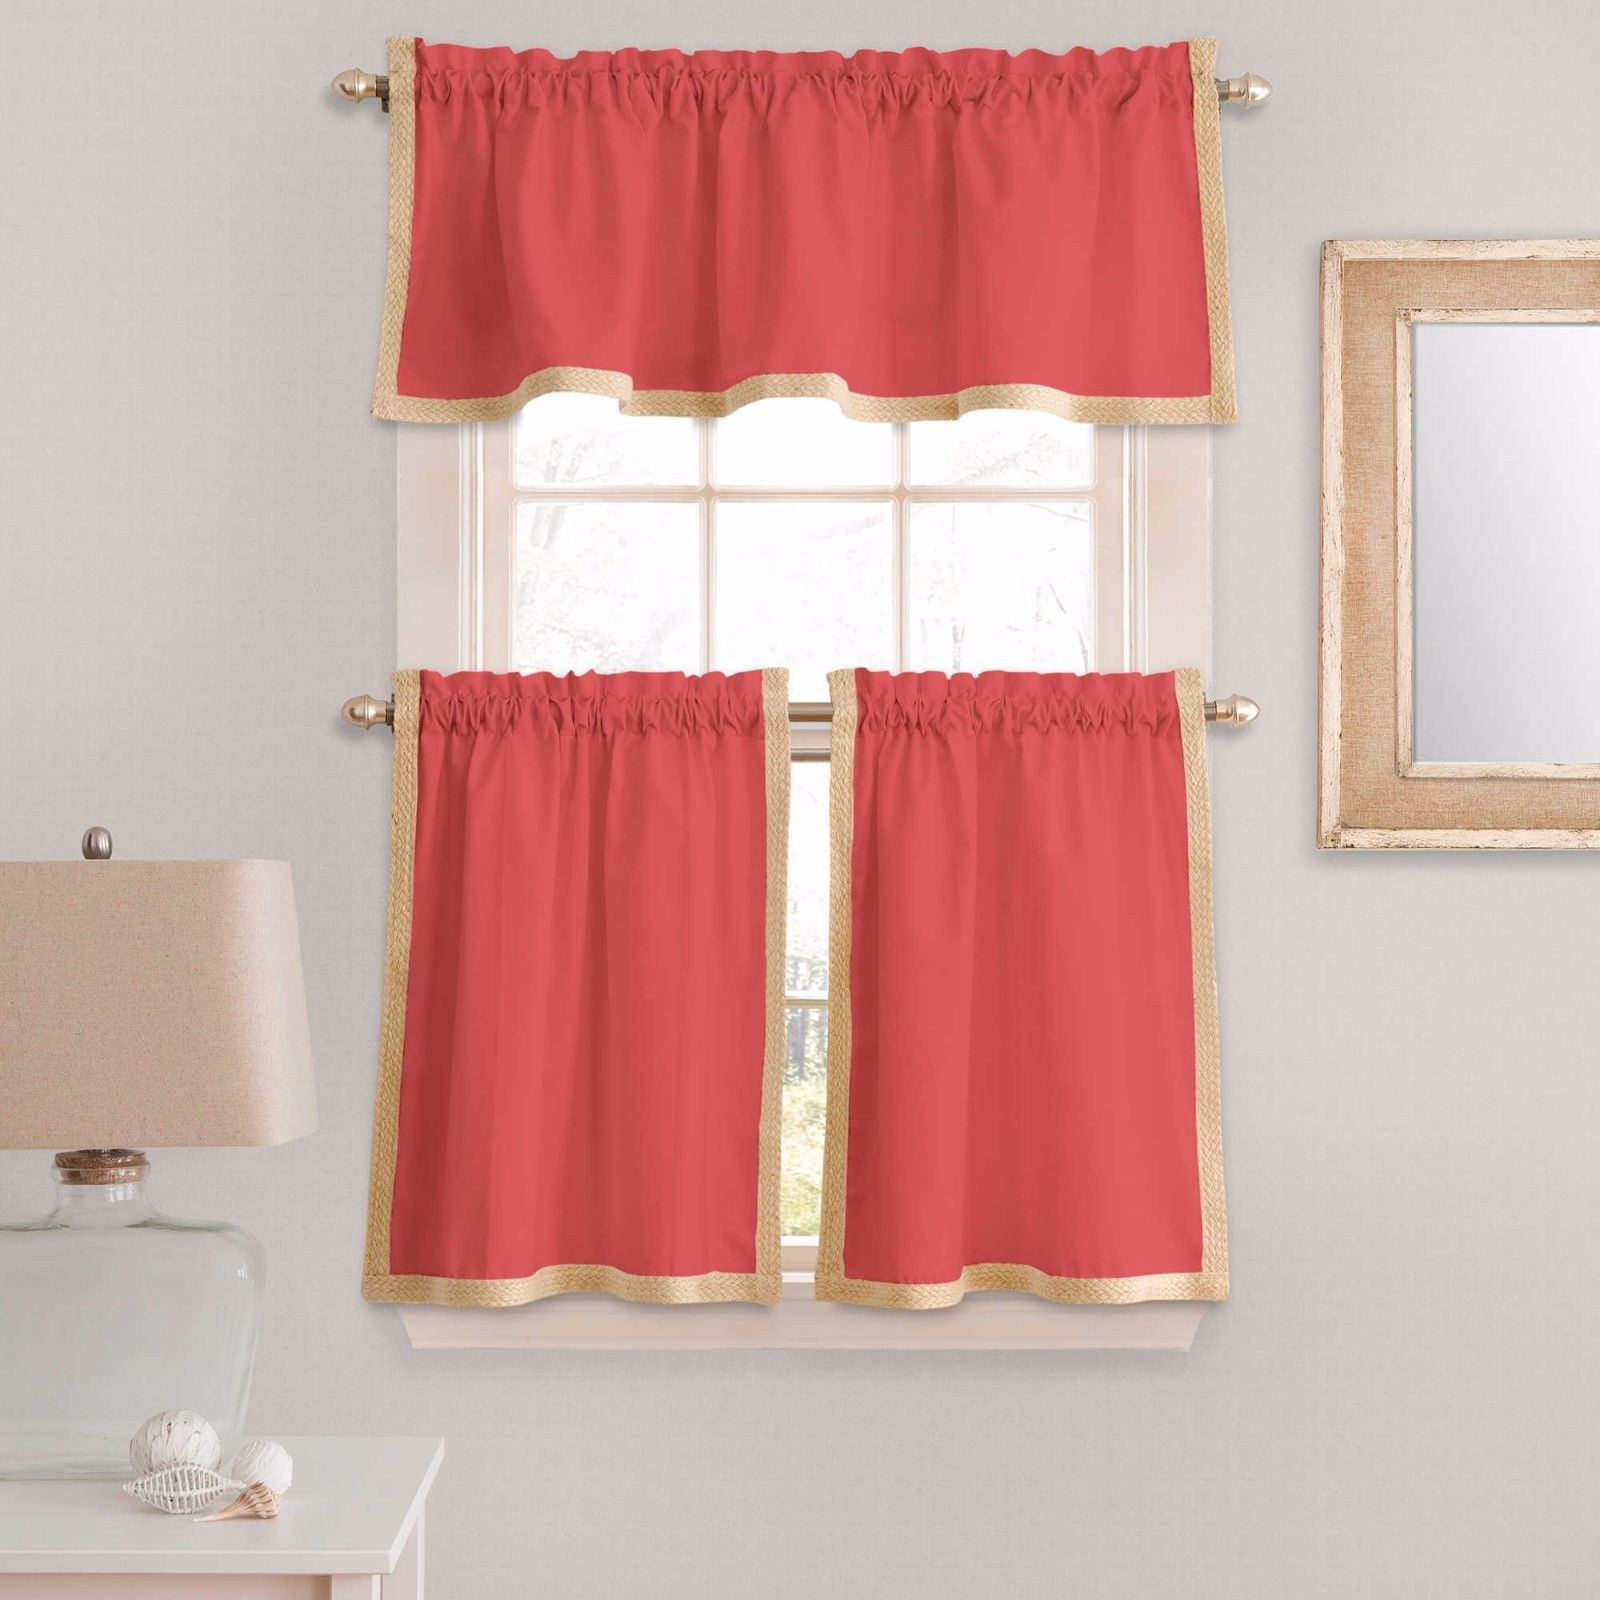 Seaview 36 Inch Window Curtain Kitchen Tier Pairs In Coral With Most Popular Waverly Kensington Bloom Window Tier Pairs (View 17 of 20)